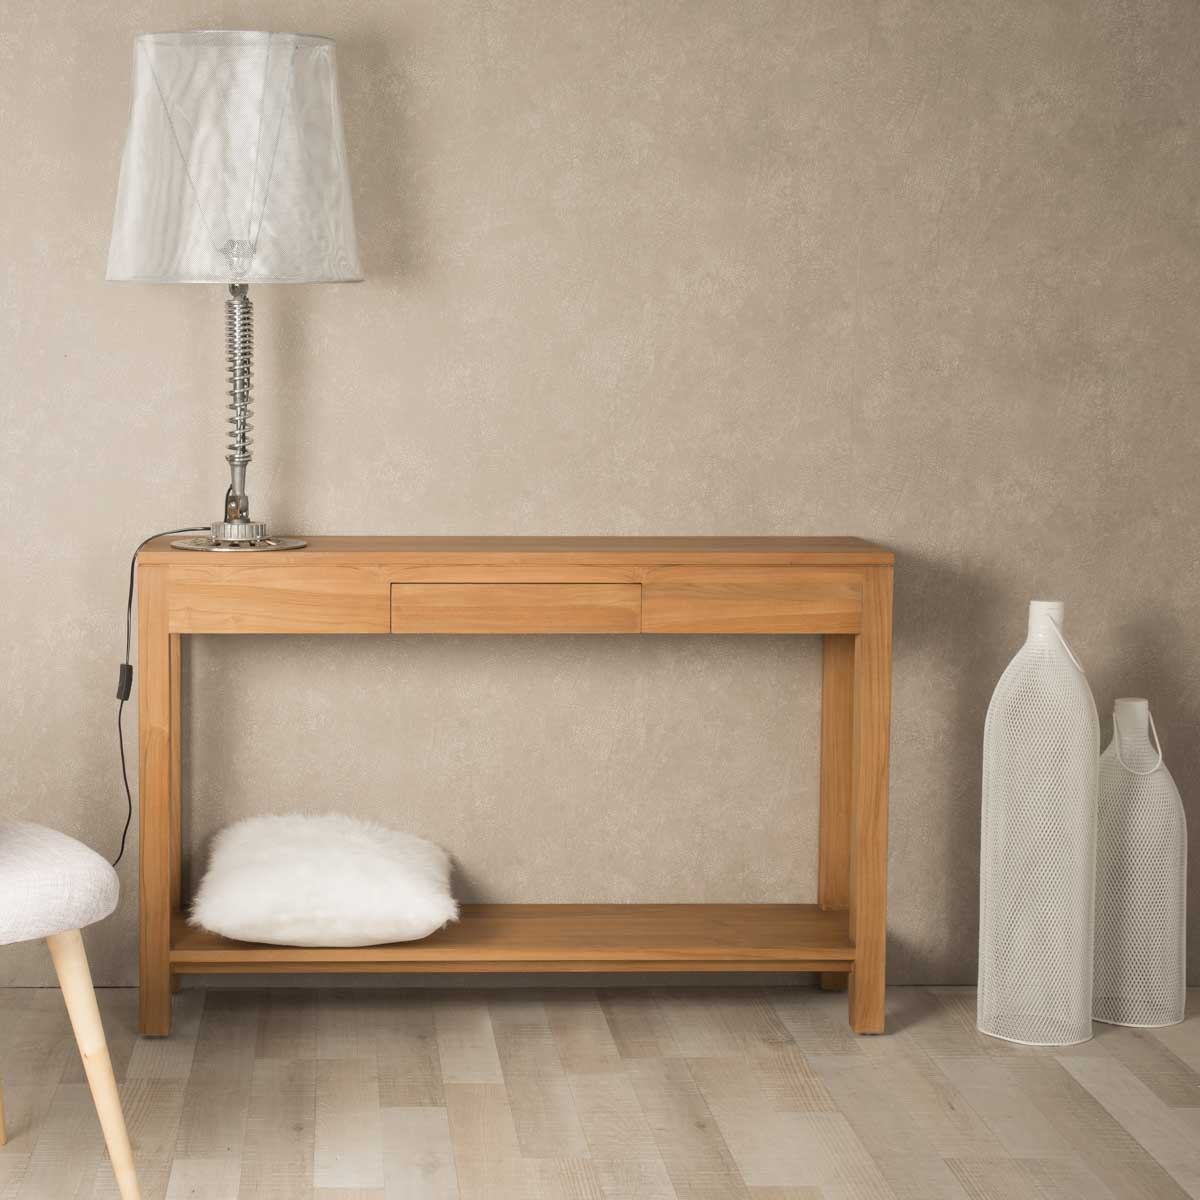 Console De Salon En Bois De Teck Massif Moderne Rectangle  # Meubles De Salon En Bois Moderne